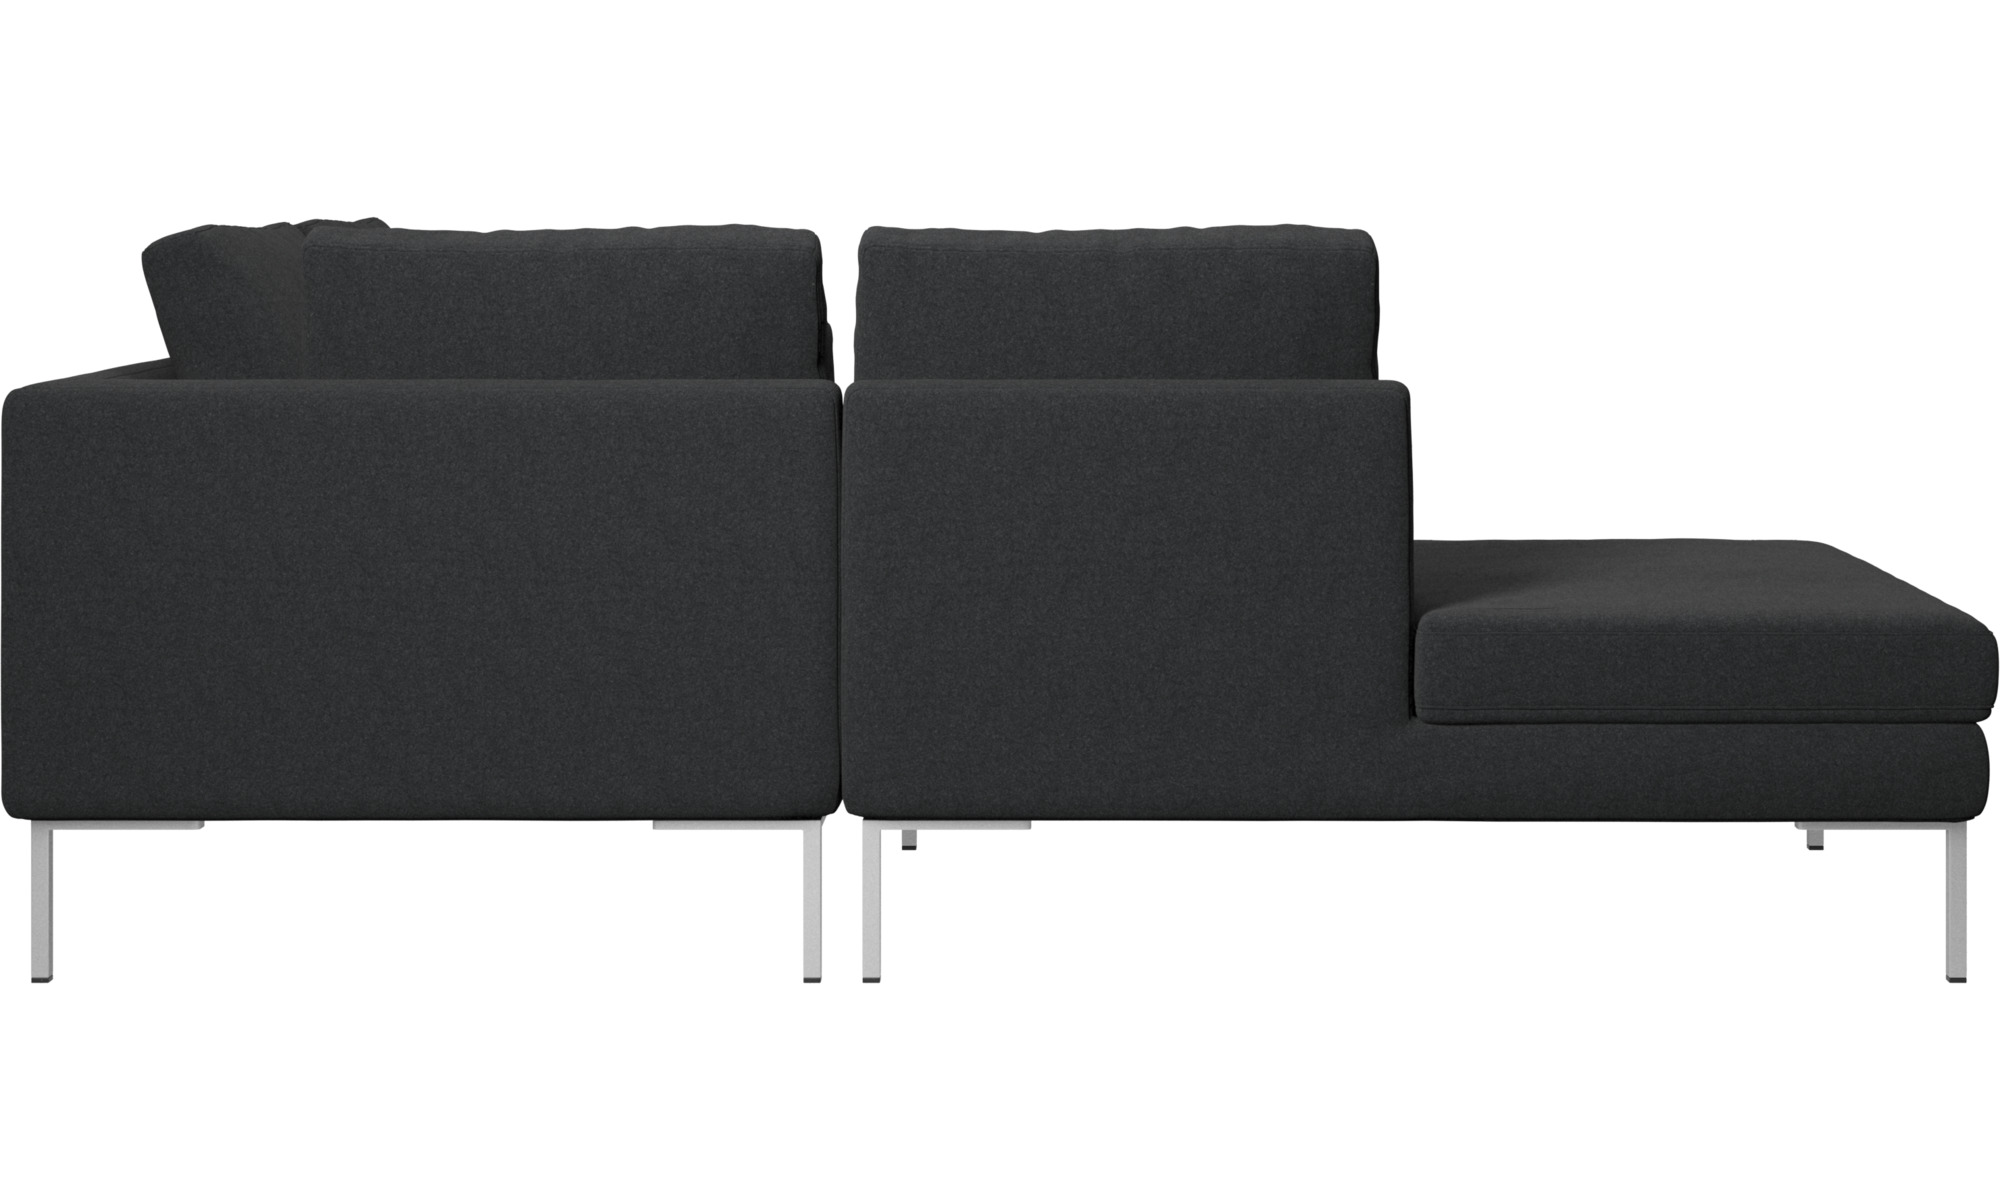 Sofas With Open End Istra 2 Sofa Lounging Unit Gray Fabric